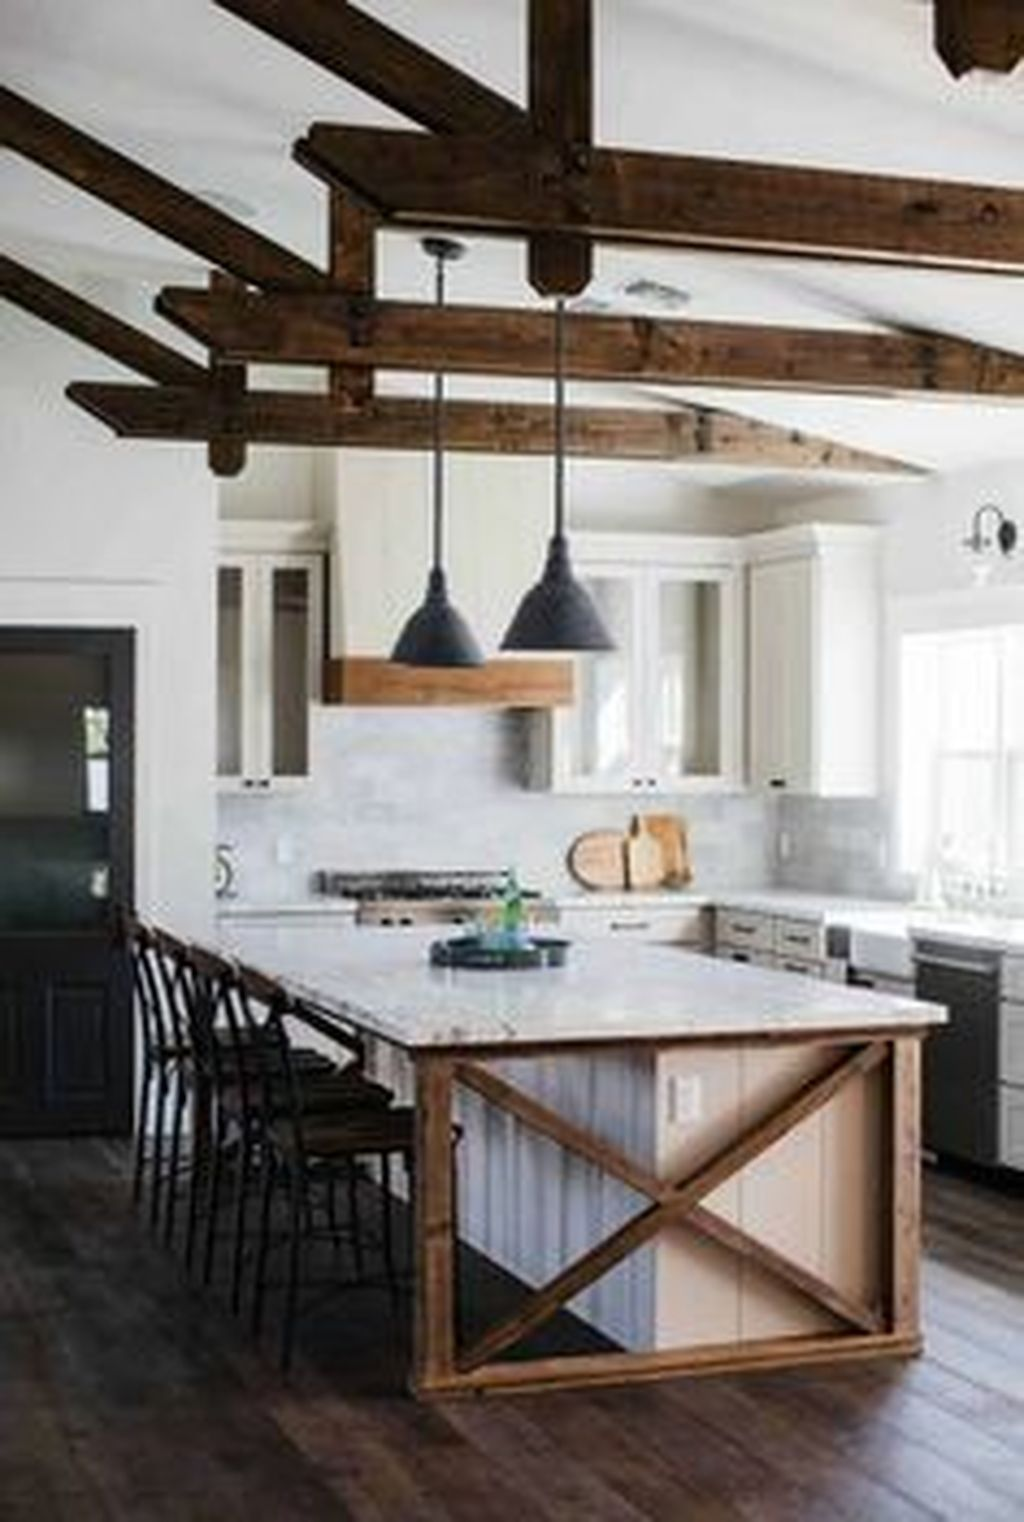 Stunning Farmhouse Kitchen Island Design Ideas 02